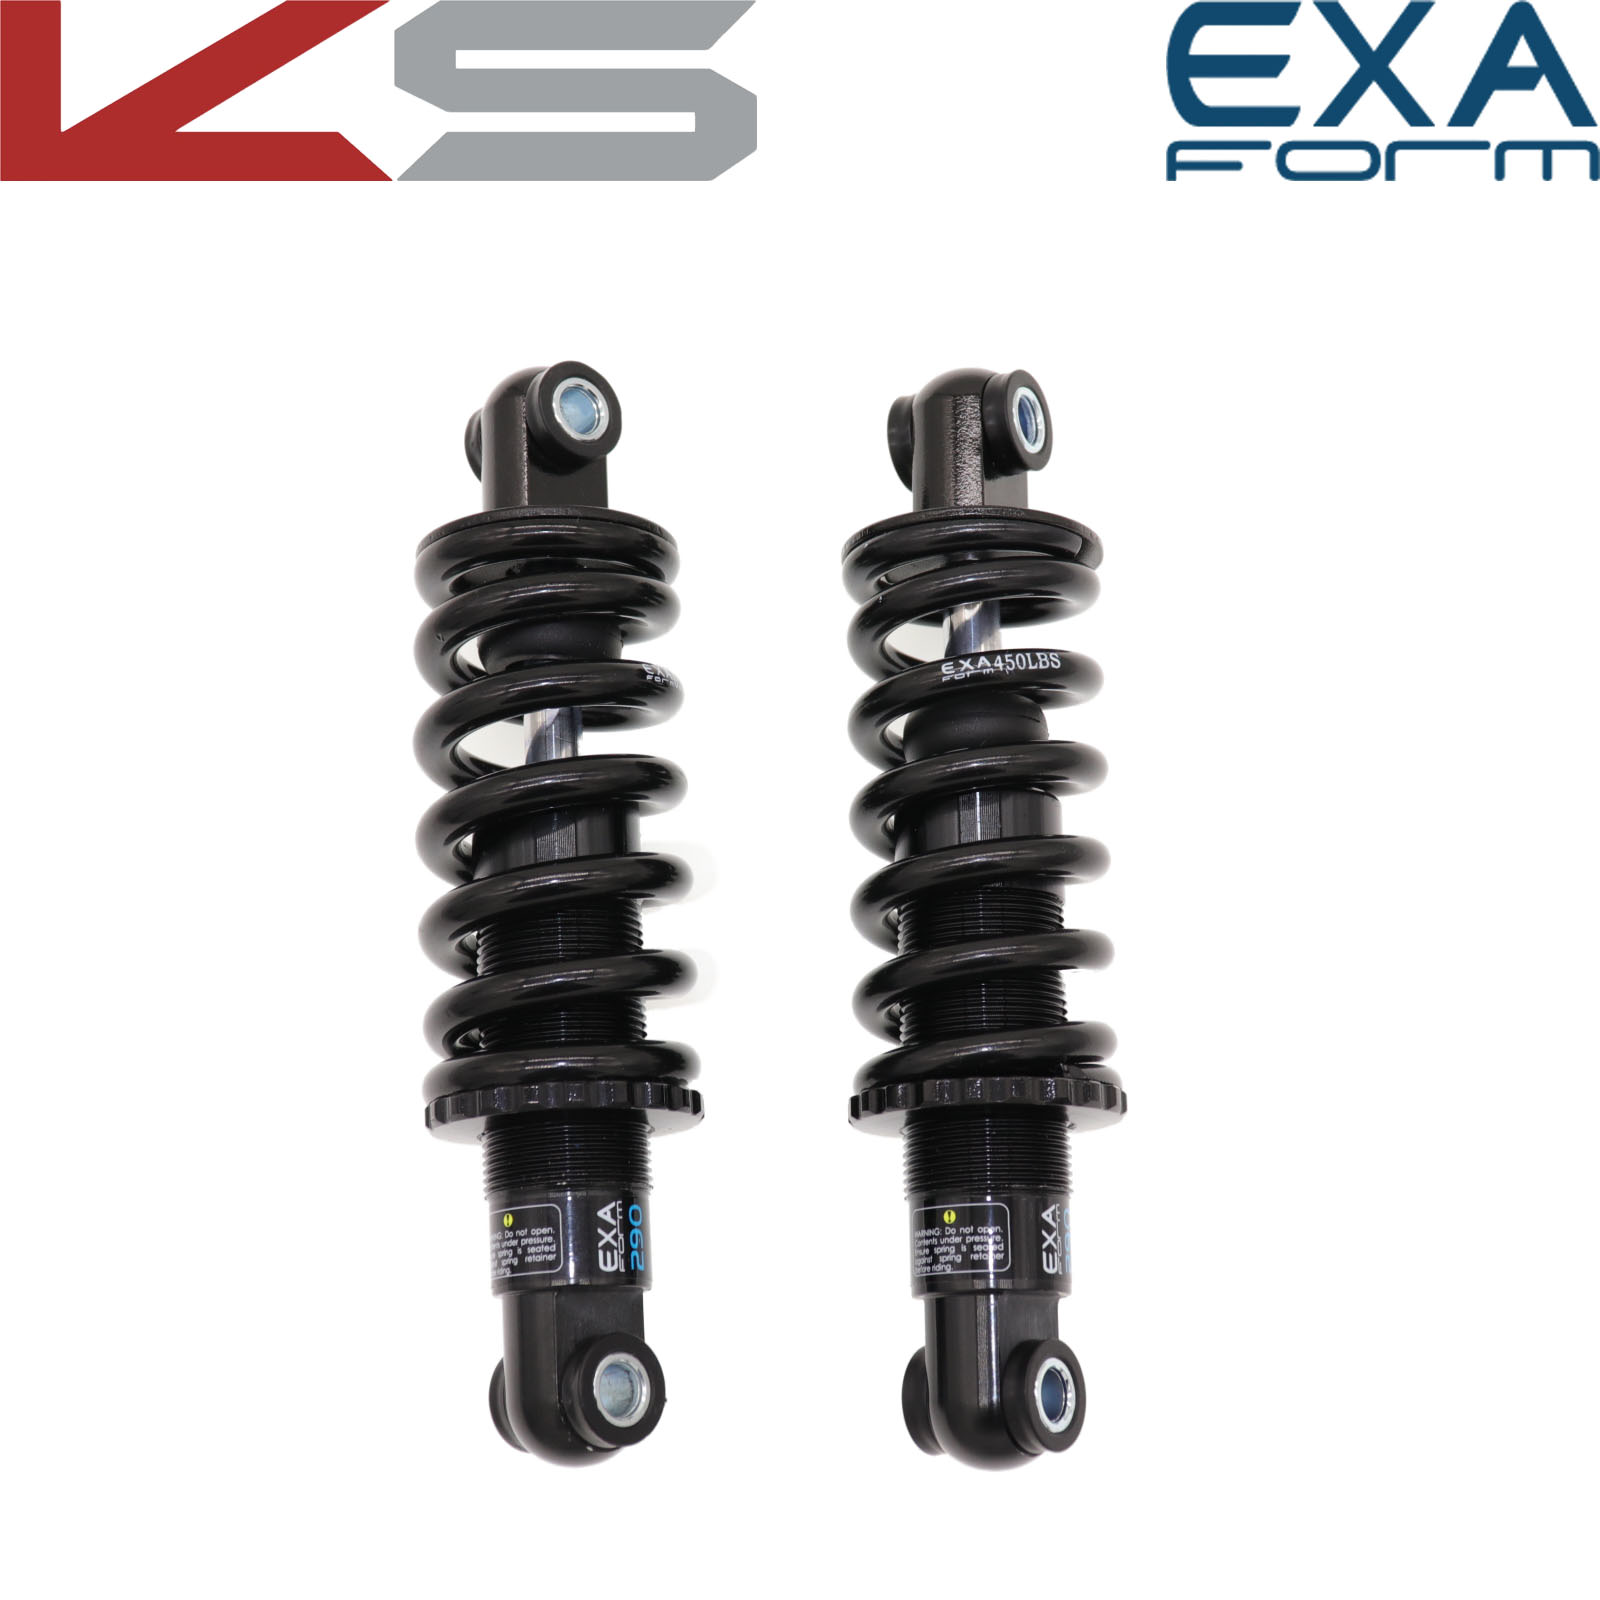 EXA Form Bike Rear Shock Absorber 290 291 Suspension Shocks Spring Kindshock Durable MTB Bike E Scooter 125 1000 1250 Lbs 850